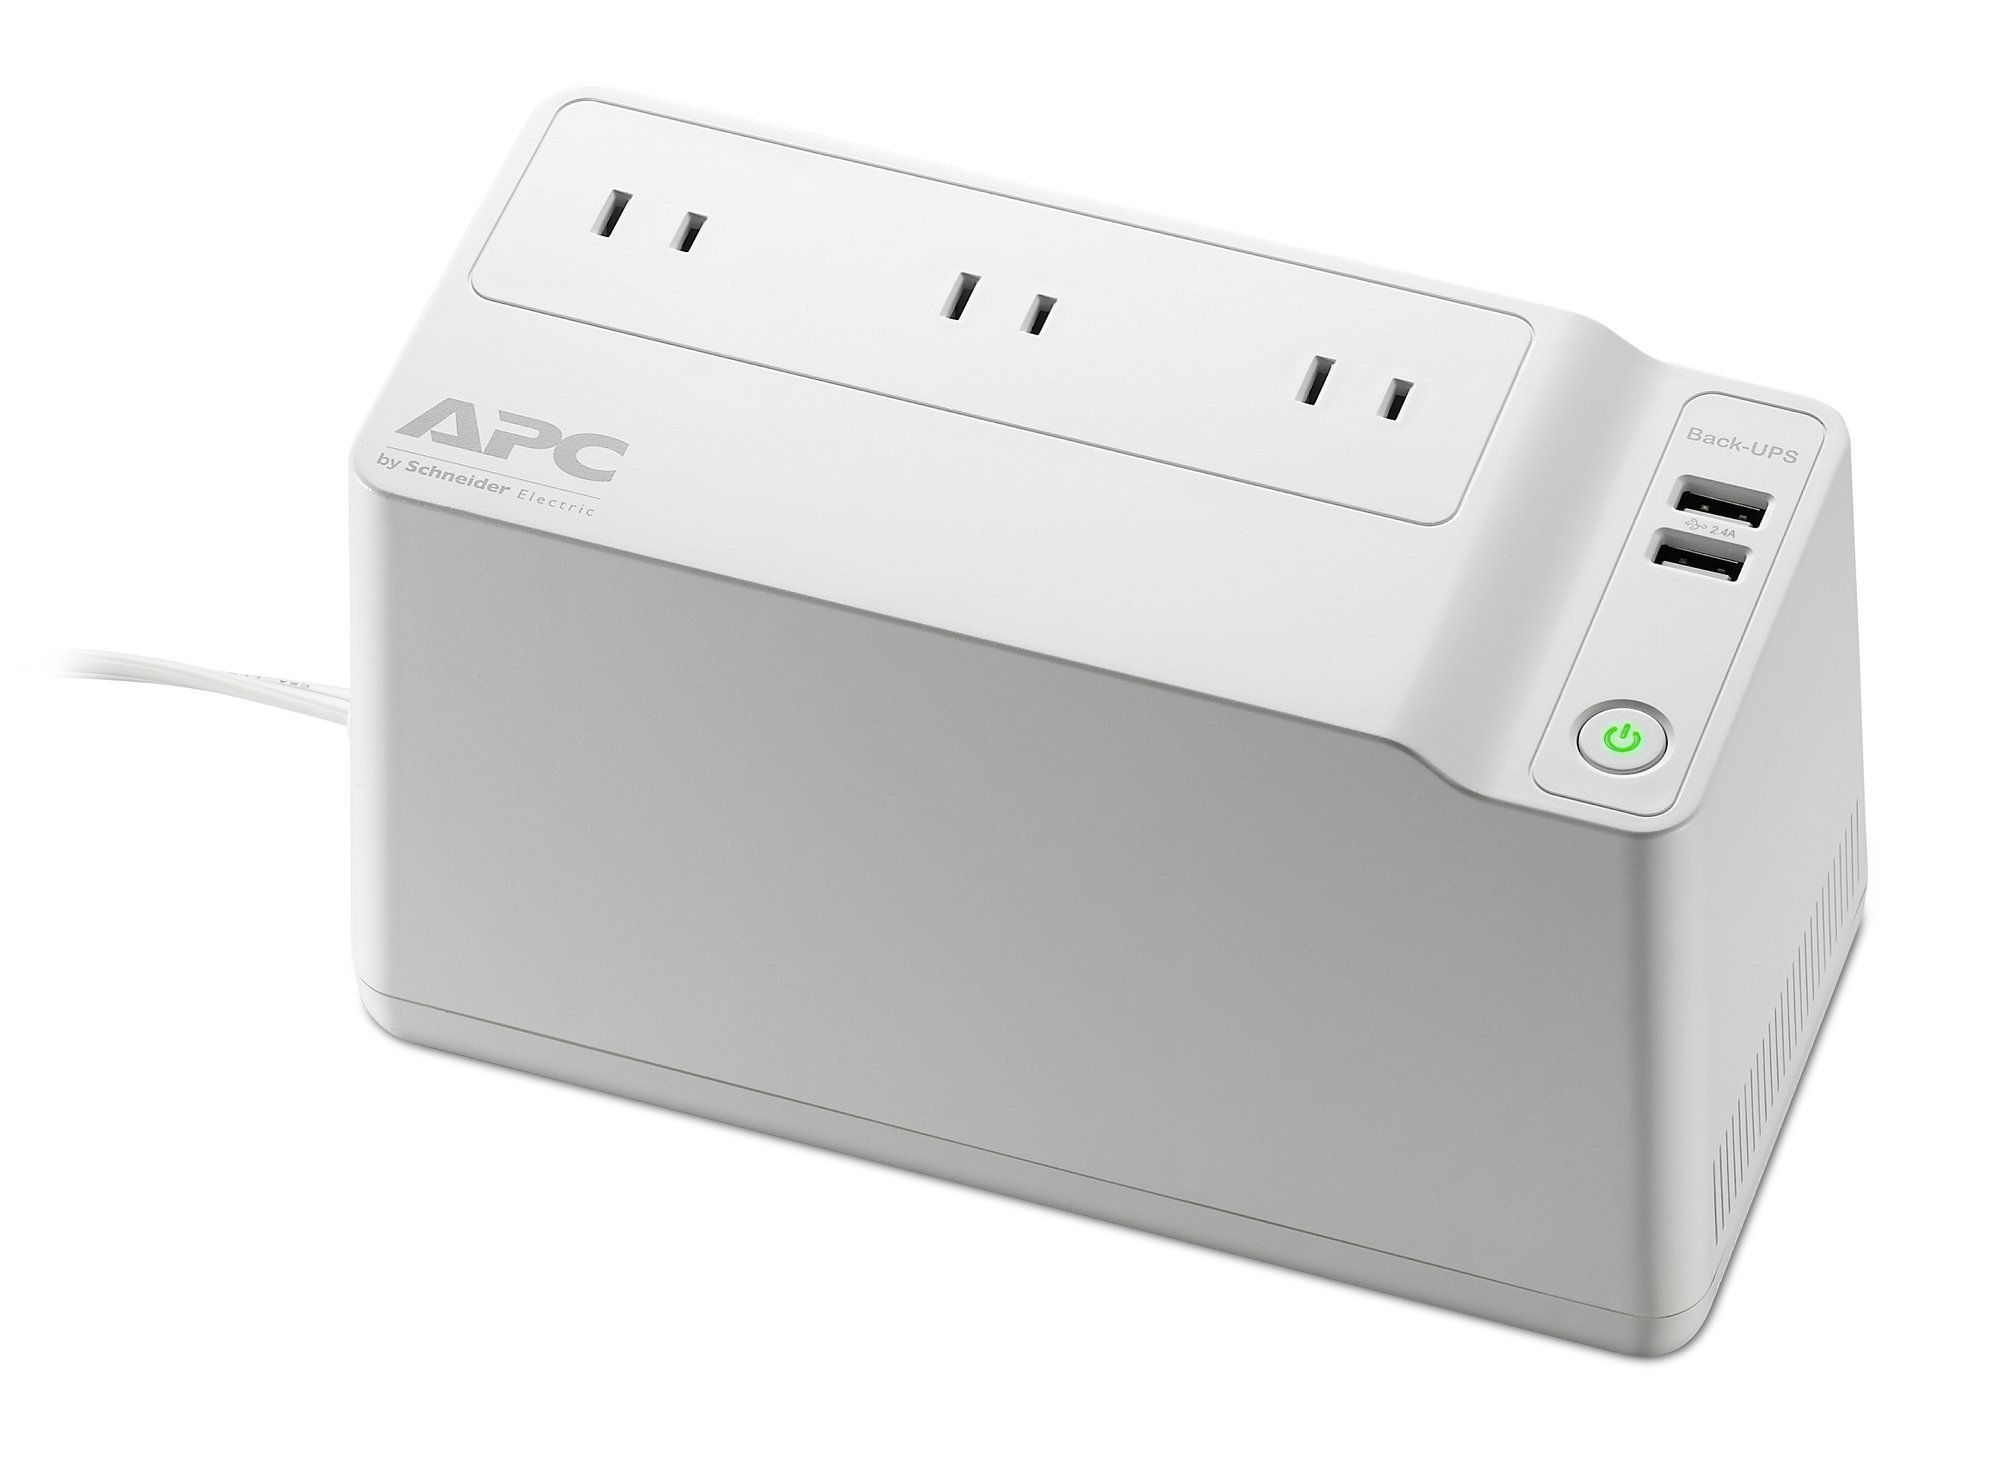 APC by Schneider Electric Back-UPS Connect 90, 120V, Network Backup, USB Charging Ports, Canada